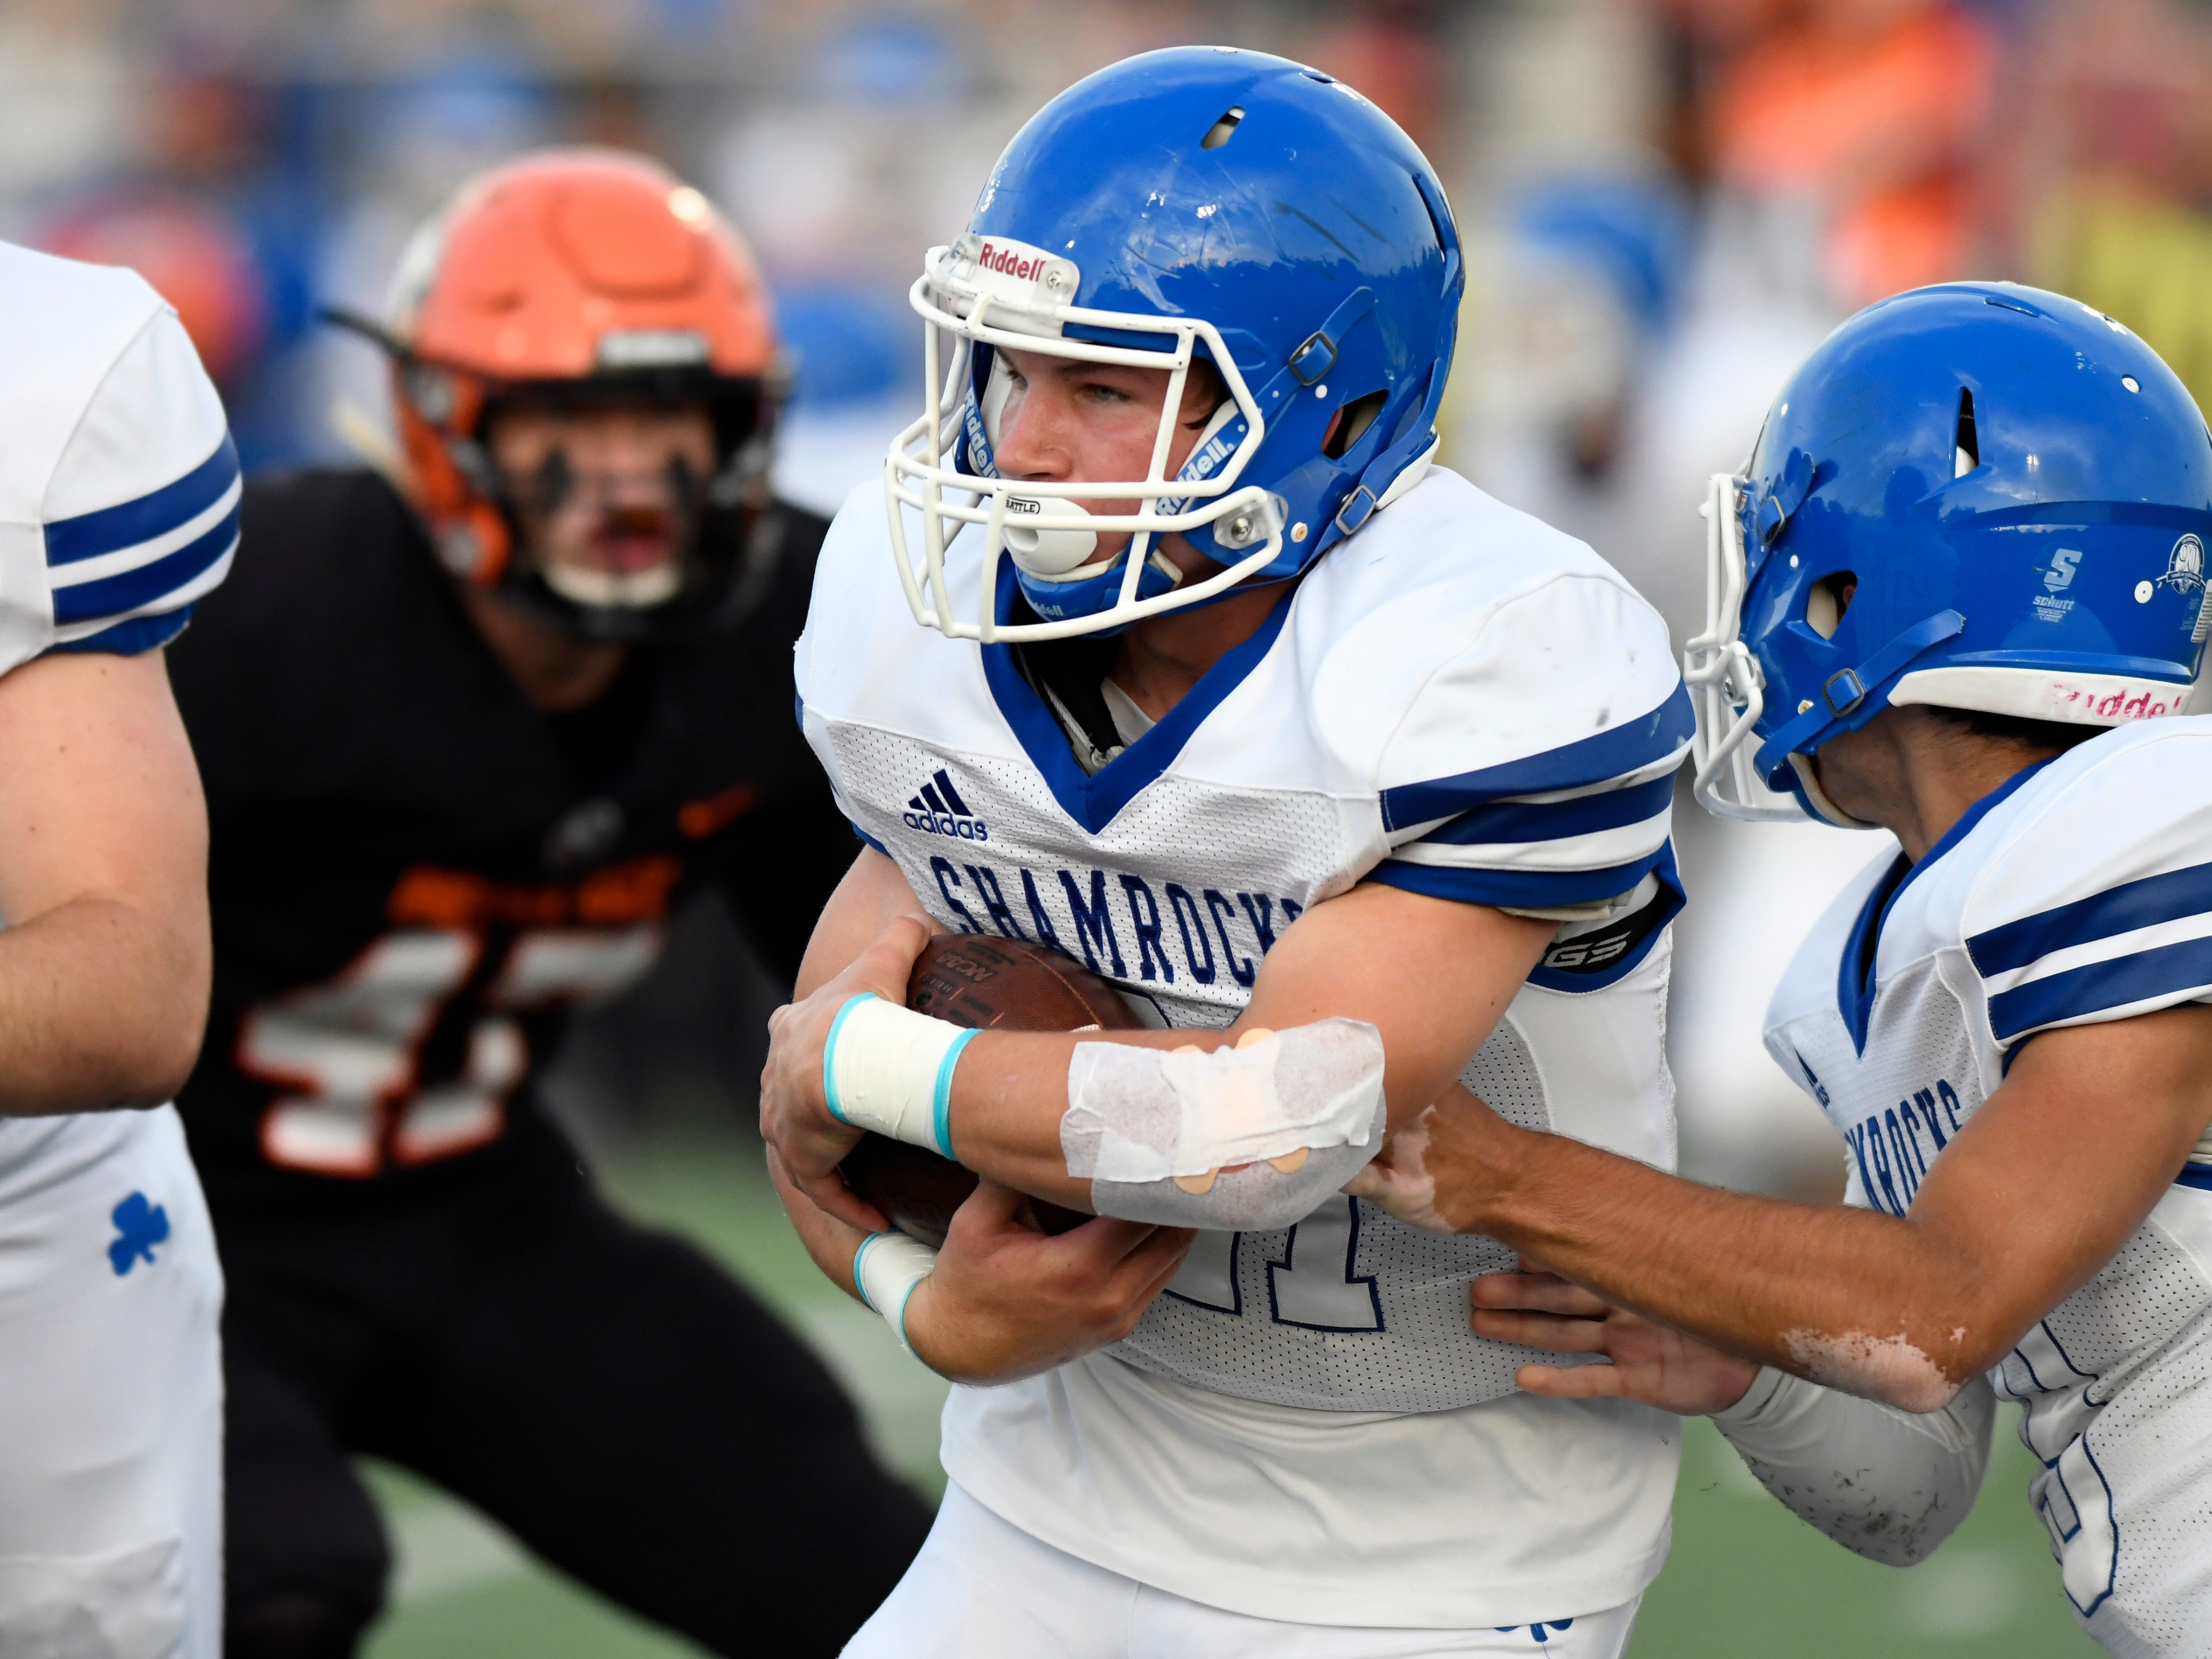 Detroit Catholic Central running back Keegan Koehler (21) takes the handoff from quarterback Jack Beno (19) and runs for yardage against Birmingham Brother Rice in the first quarter, Saturday, Sept. 22, 2018 at Hurley Field in Berkley, Mich.  Catholic Central defeated Brother Rice, 21-0.  (Jose Juarez/Hometown Life)